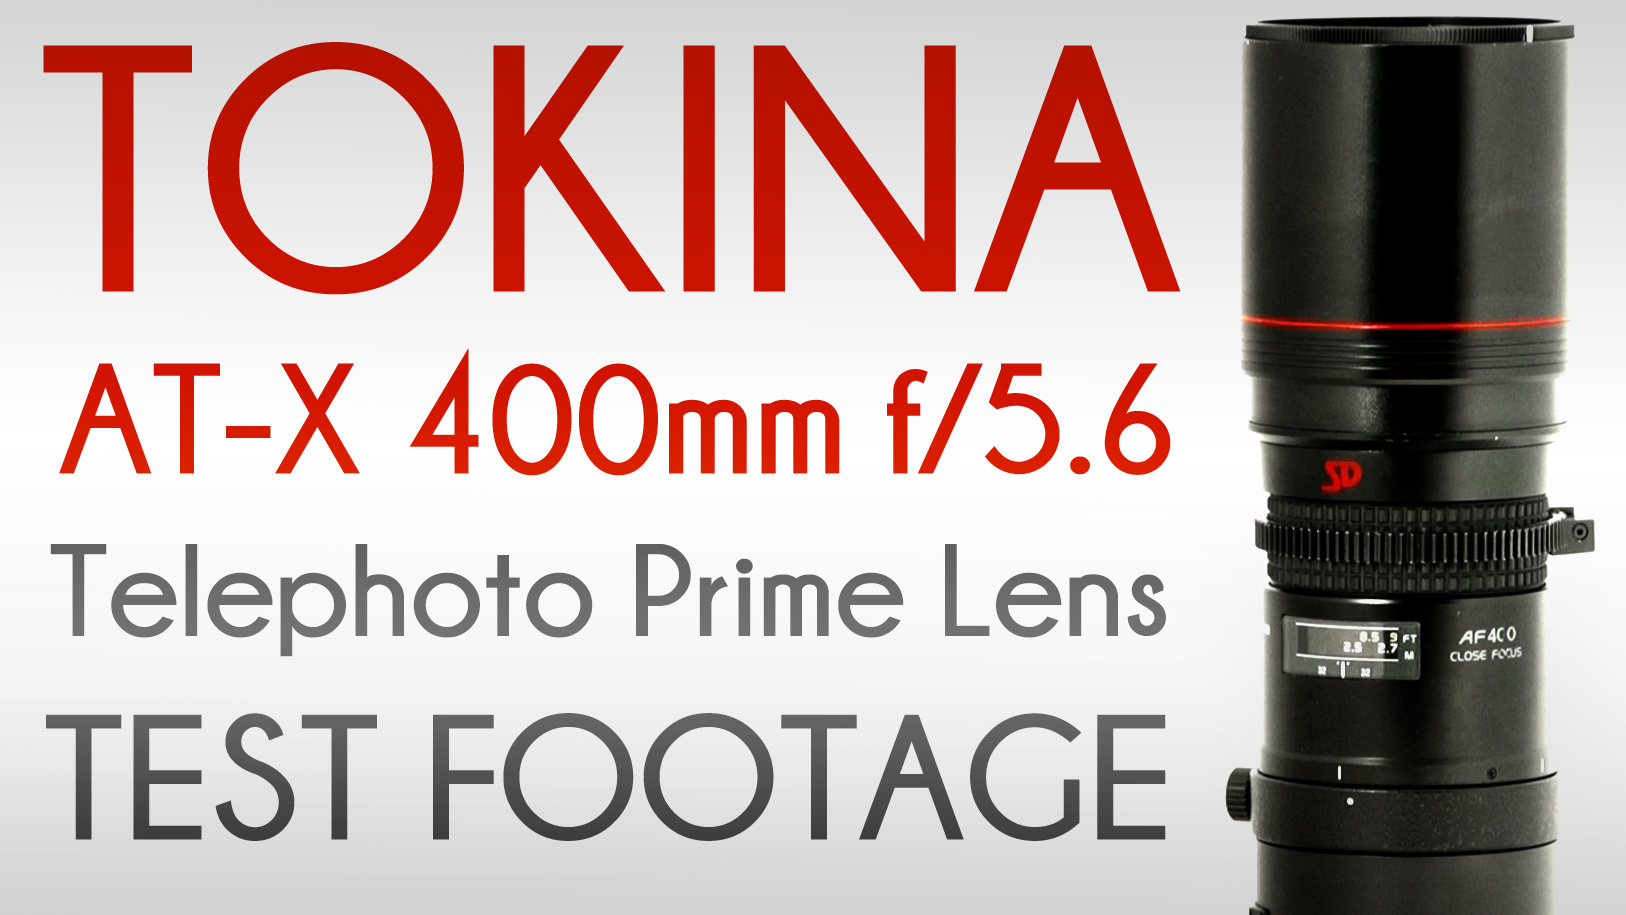 TOKINA AT-X 400mm f/5.6 Telephoto Lens | Test Footage